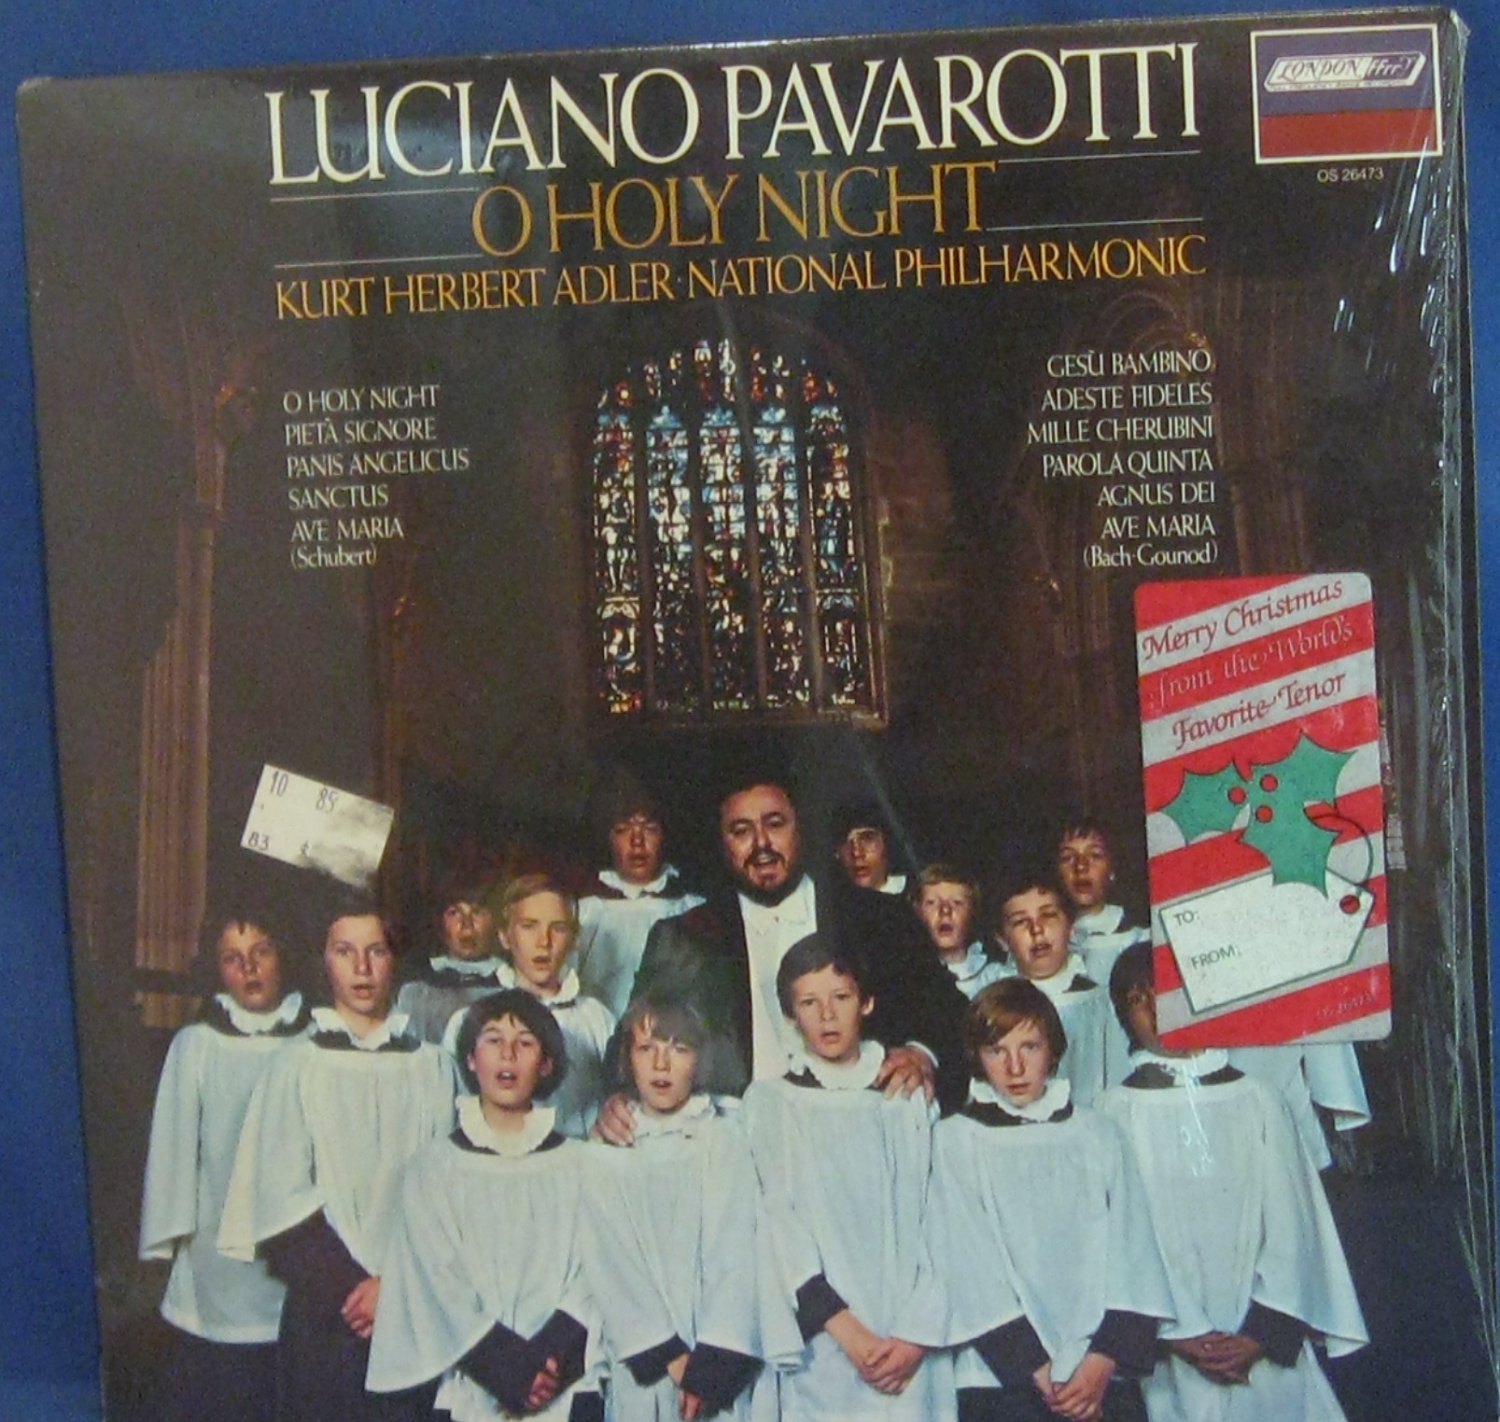 Luciano Pavarotti O Holy Night - Vinyl LP